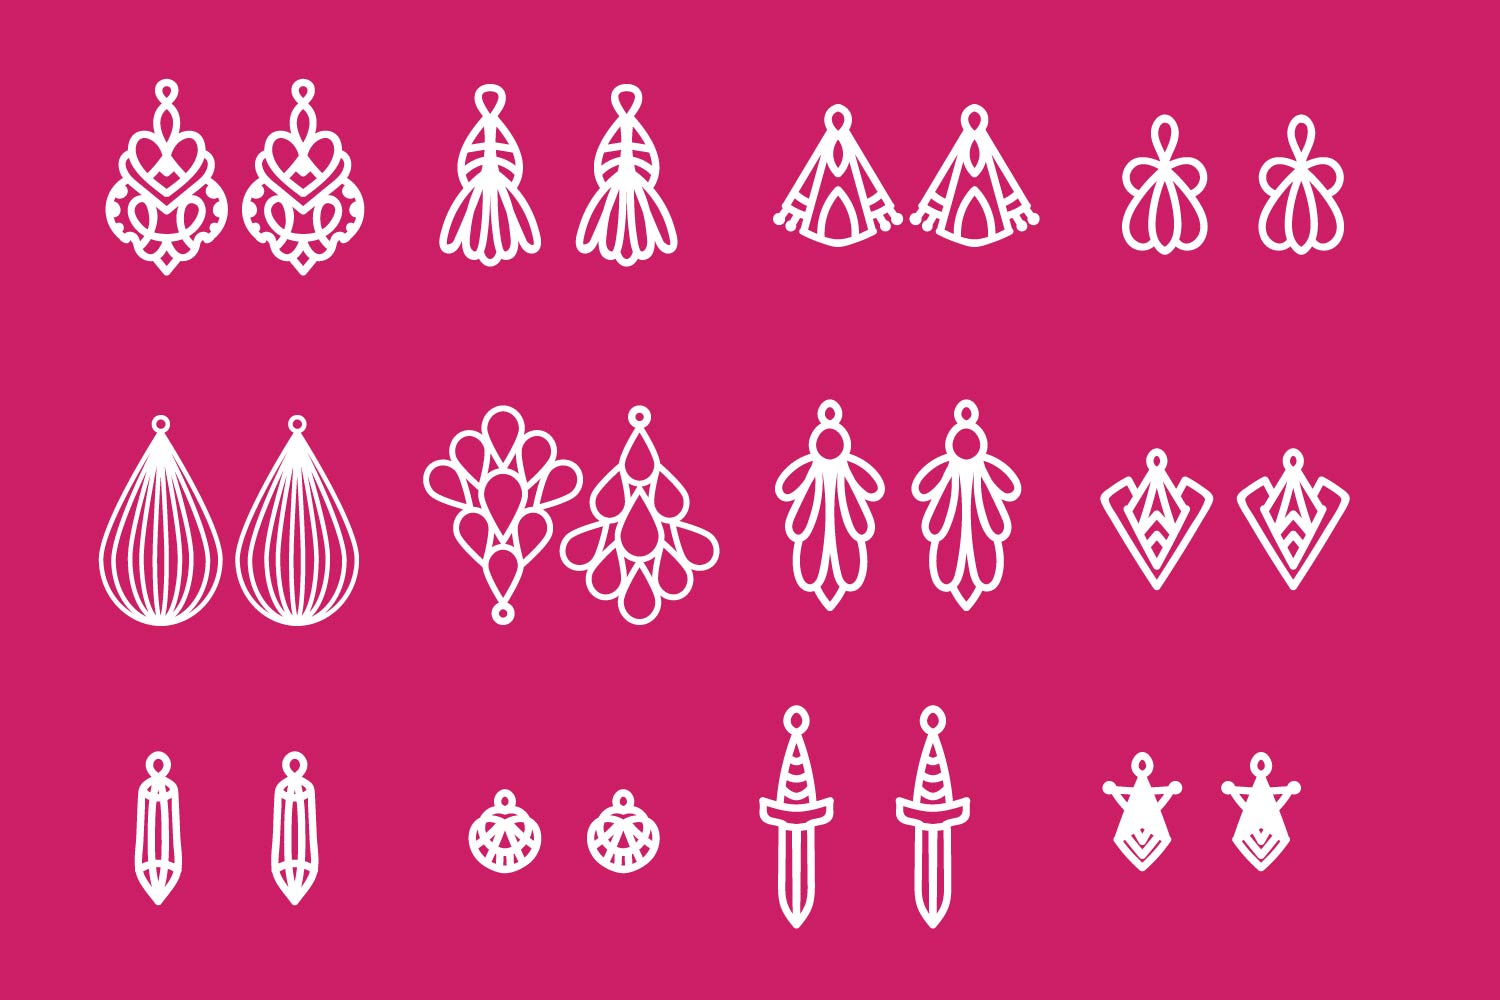 Earring SVG Bundle Pack - 12 Hand Drawn Earrings example image 2